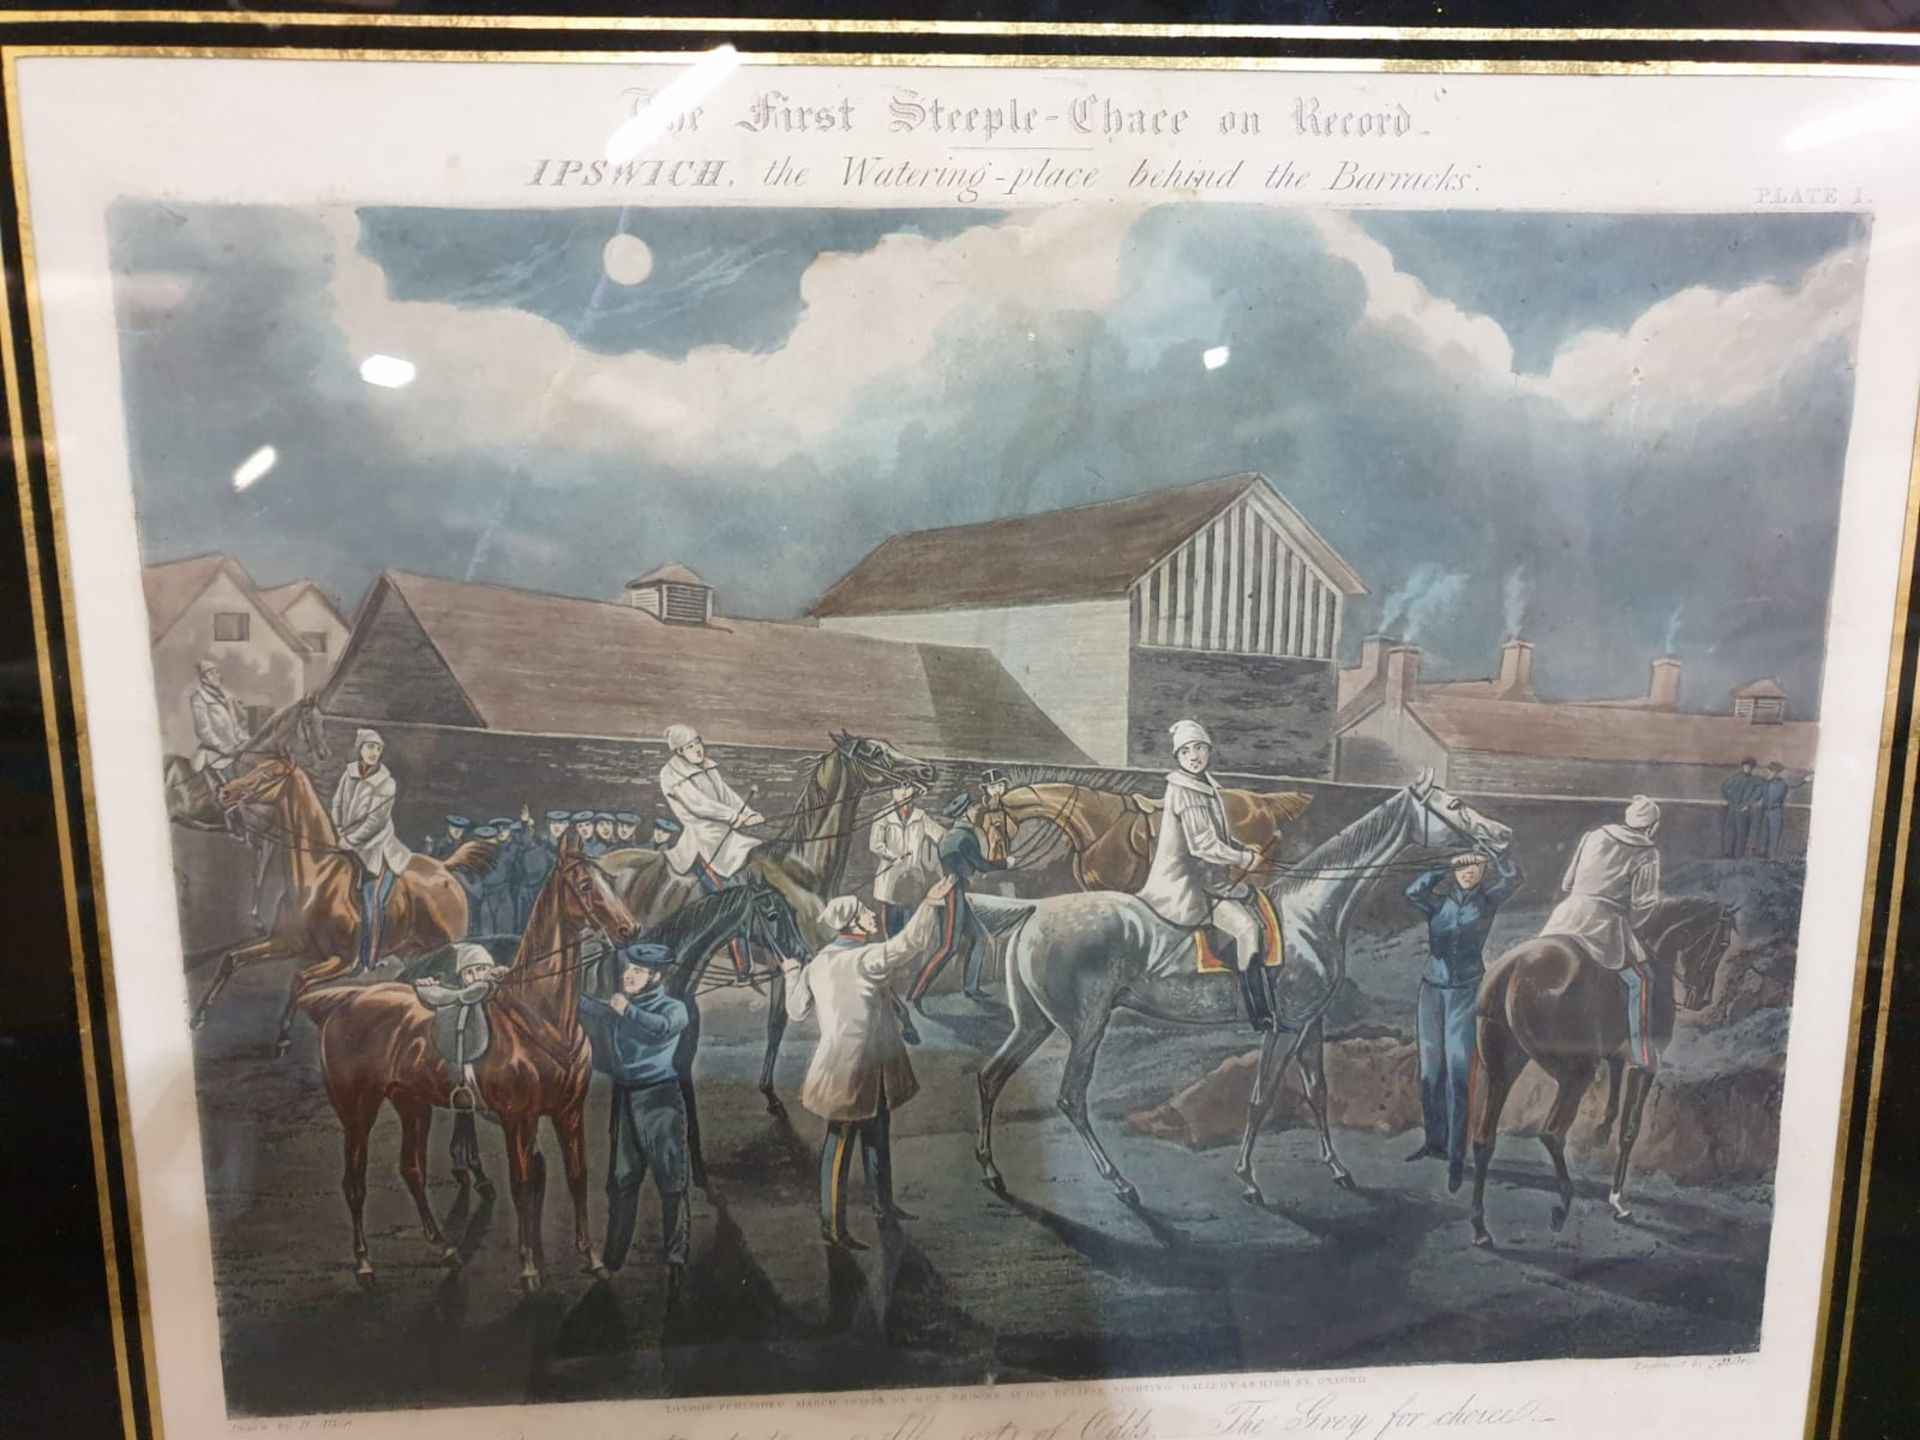 Framed vintage print .The First Steeplechase on Record - Ipswich, the watering place behind the - Image 6 of 6